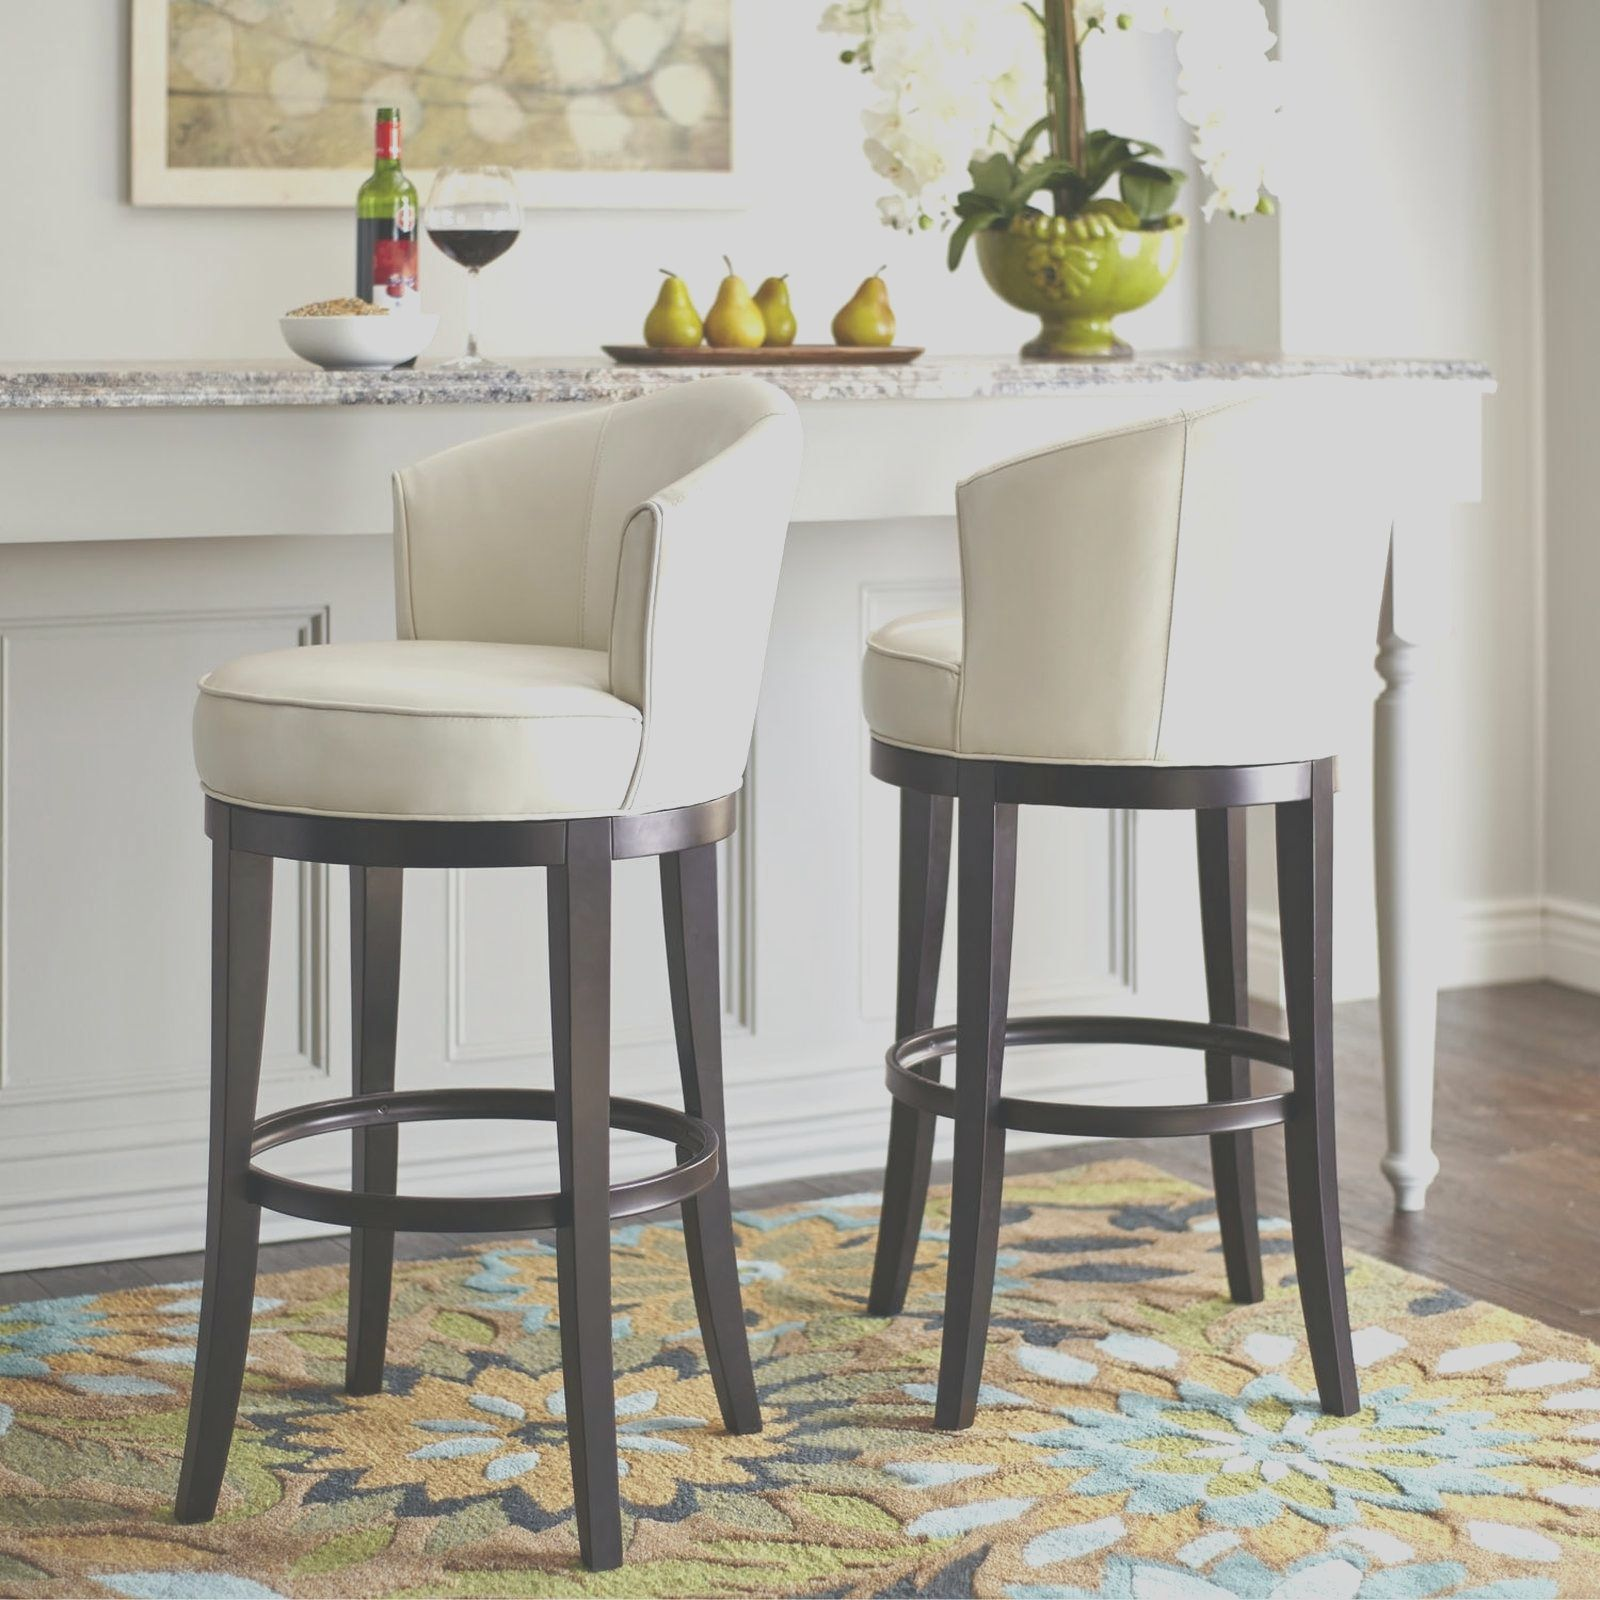 13 Best Kitchen And Bar Chairs Image Island Chairs Kitchen Stools Stools For Kitchen Island